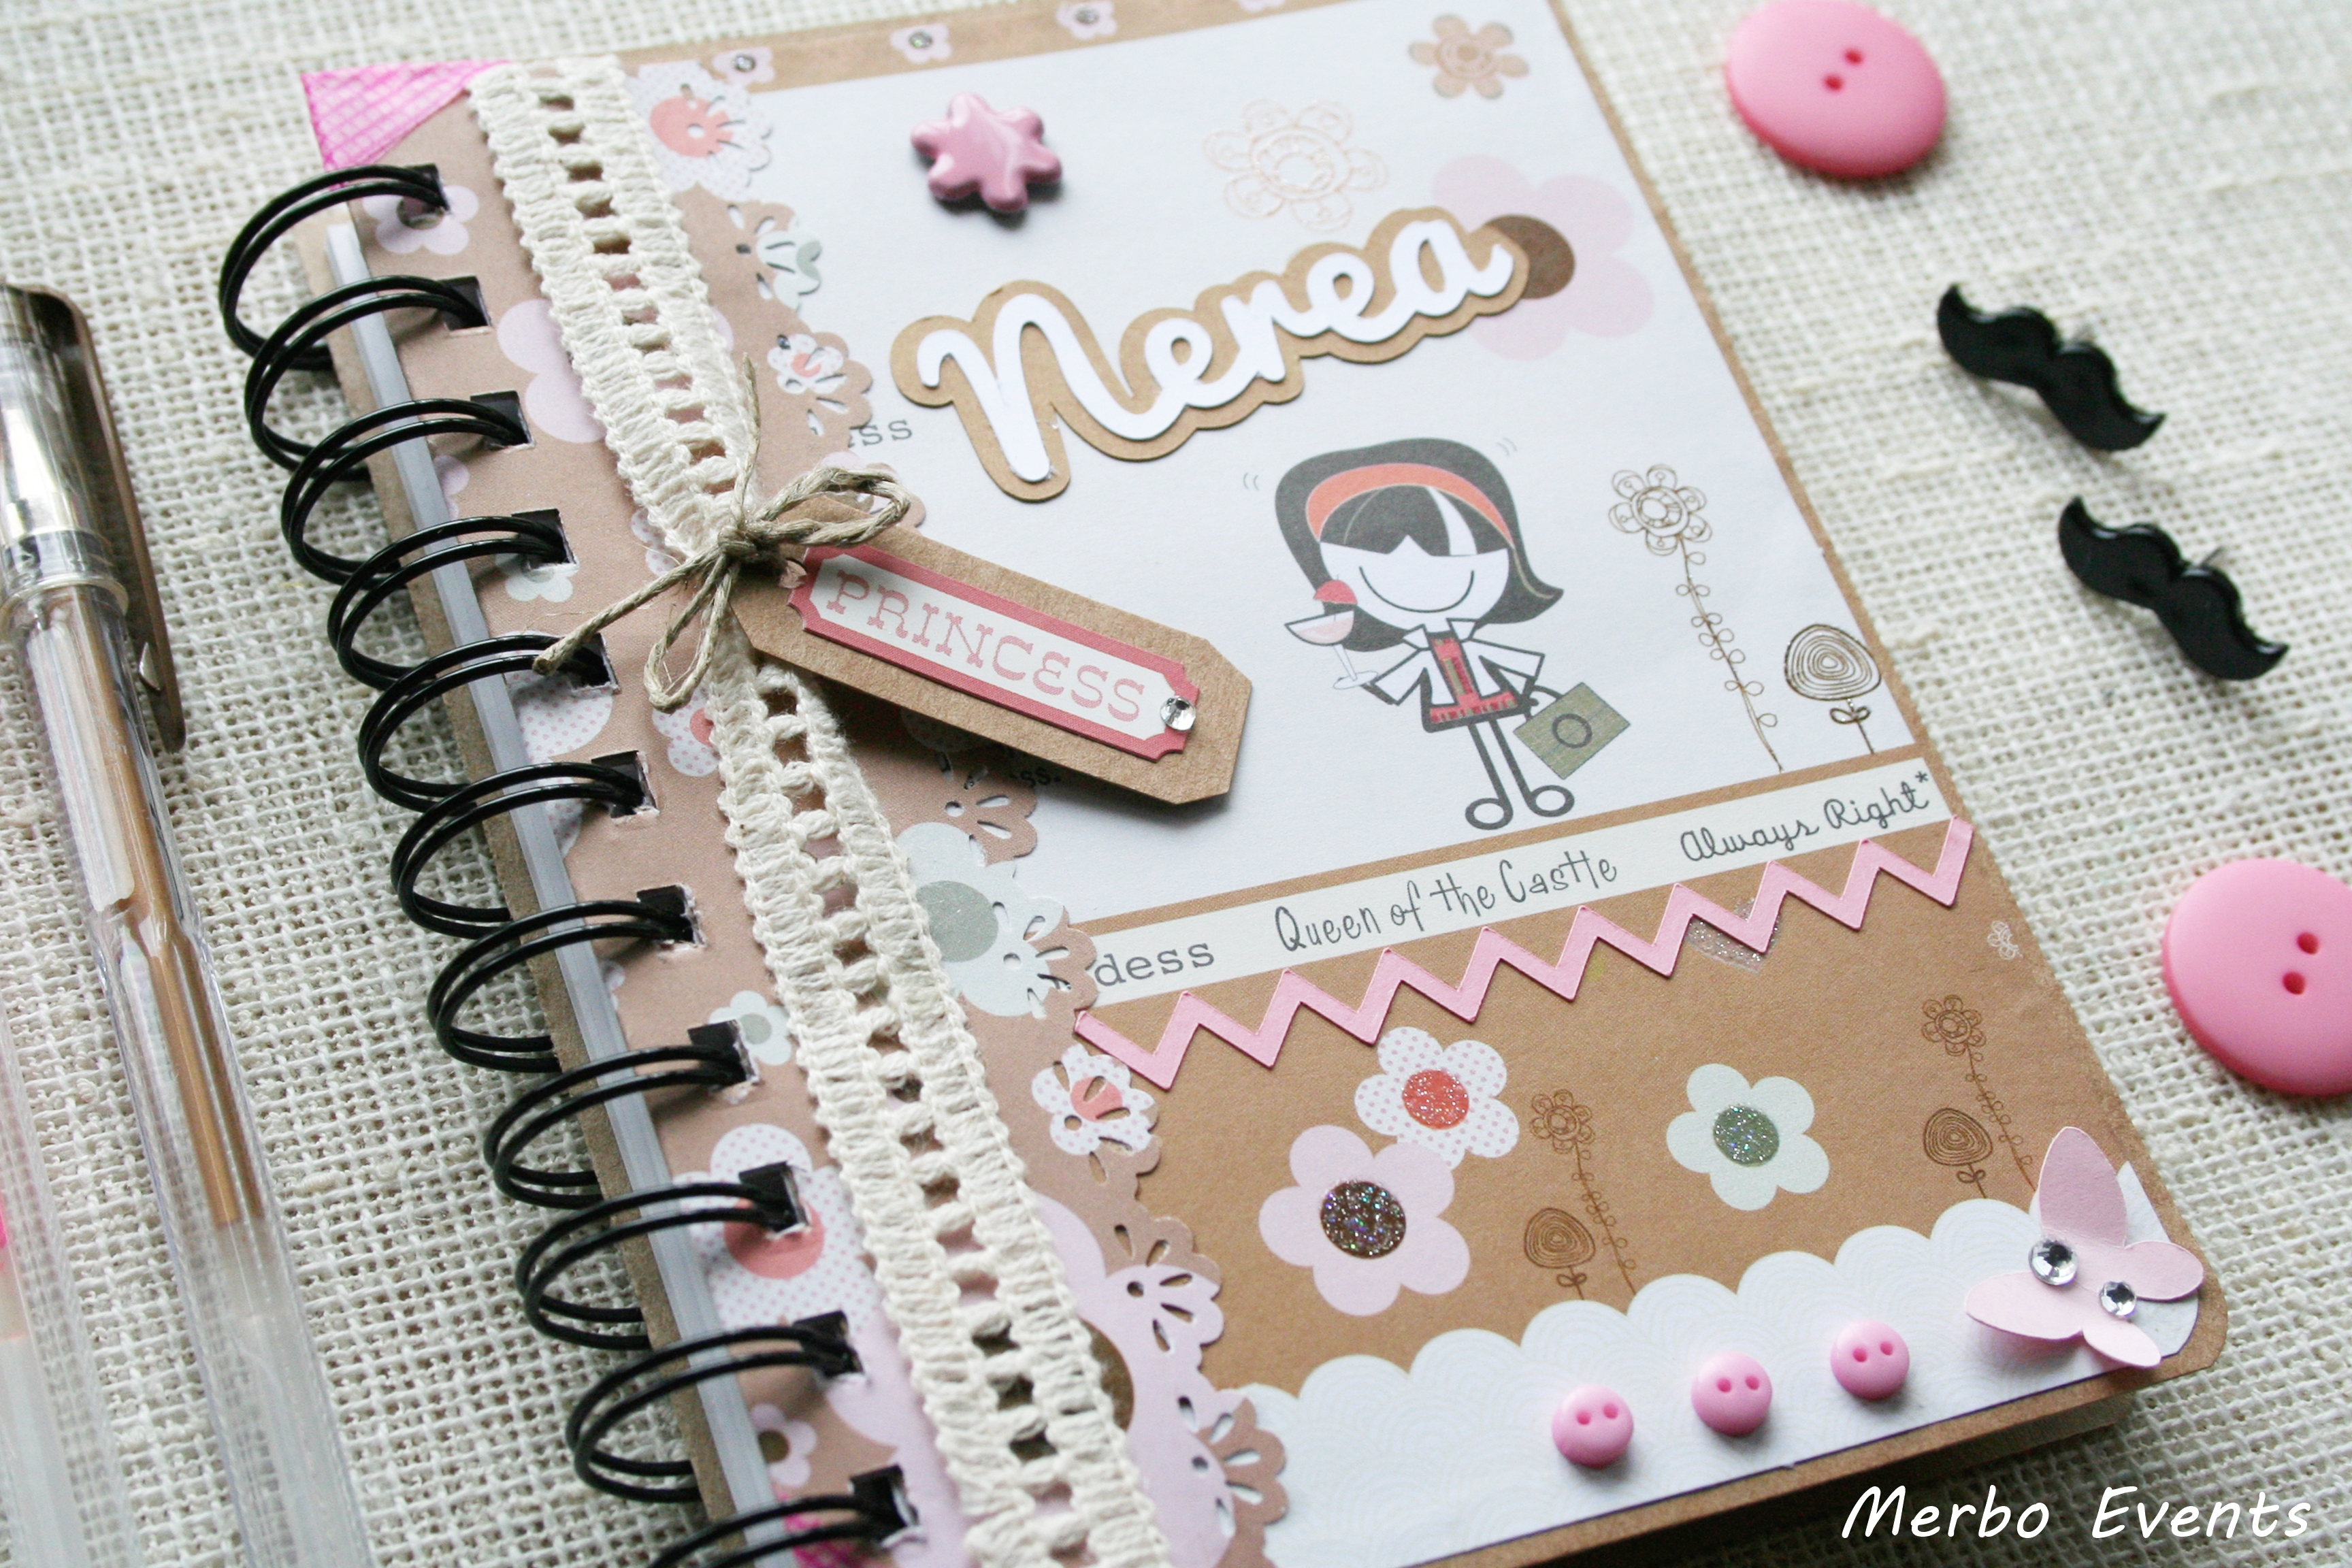 Libreta modelo 1 Merbo Events